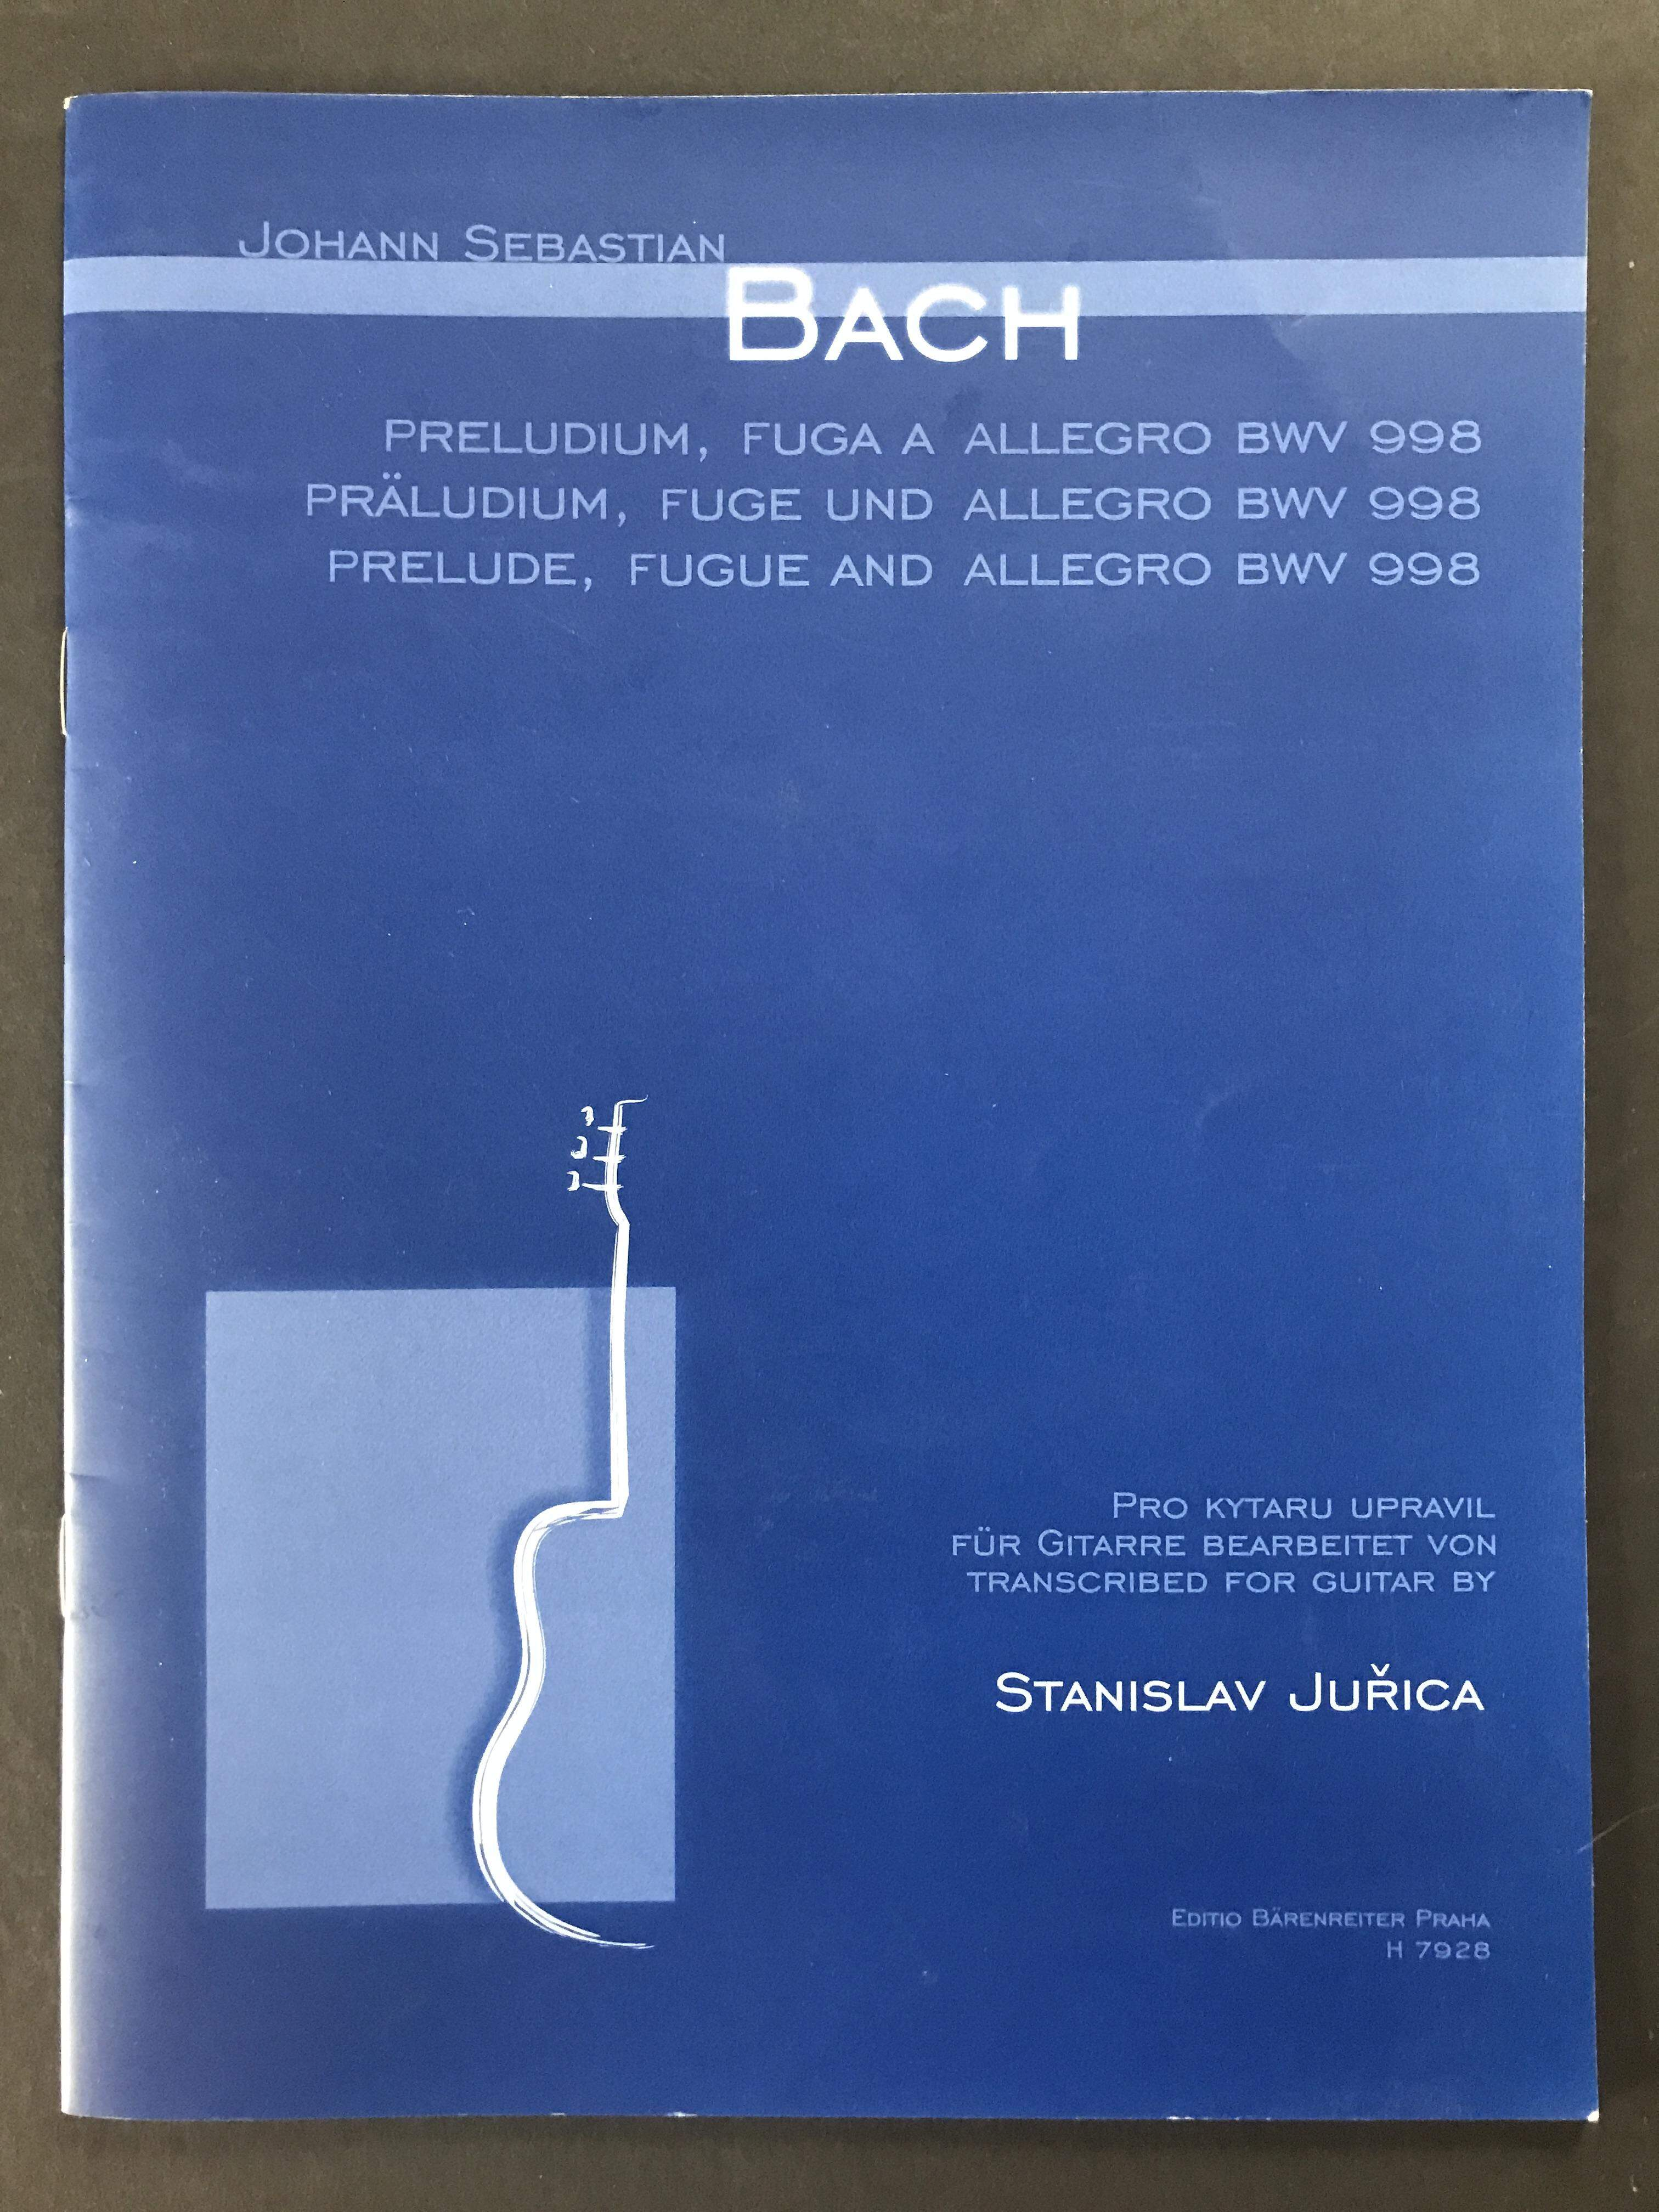 Prelude, Fugue & Allegro by J. S. Bach